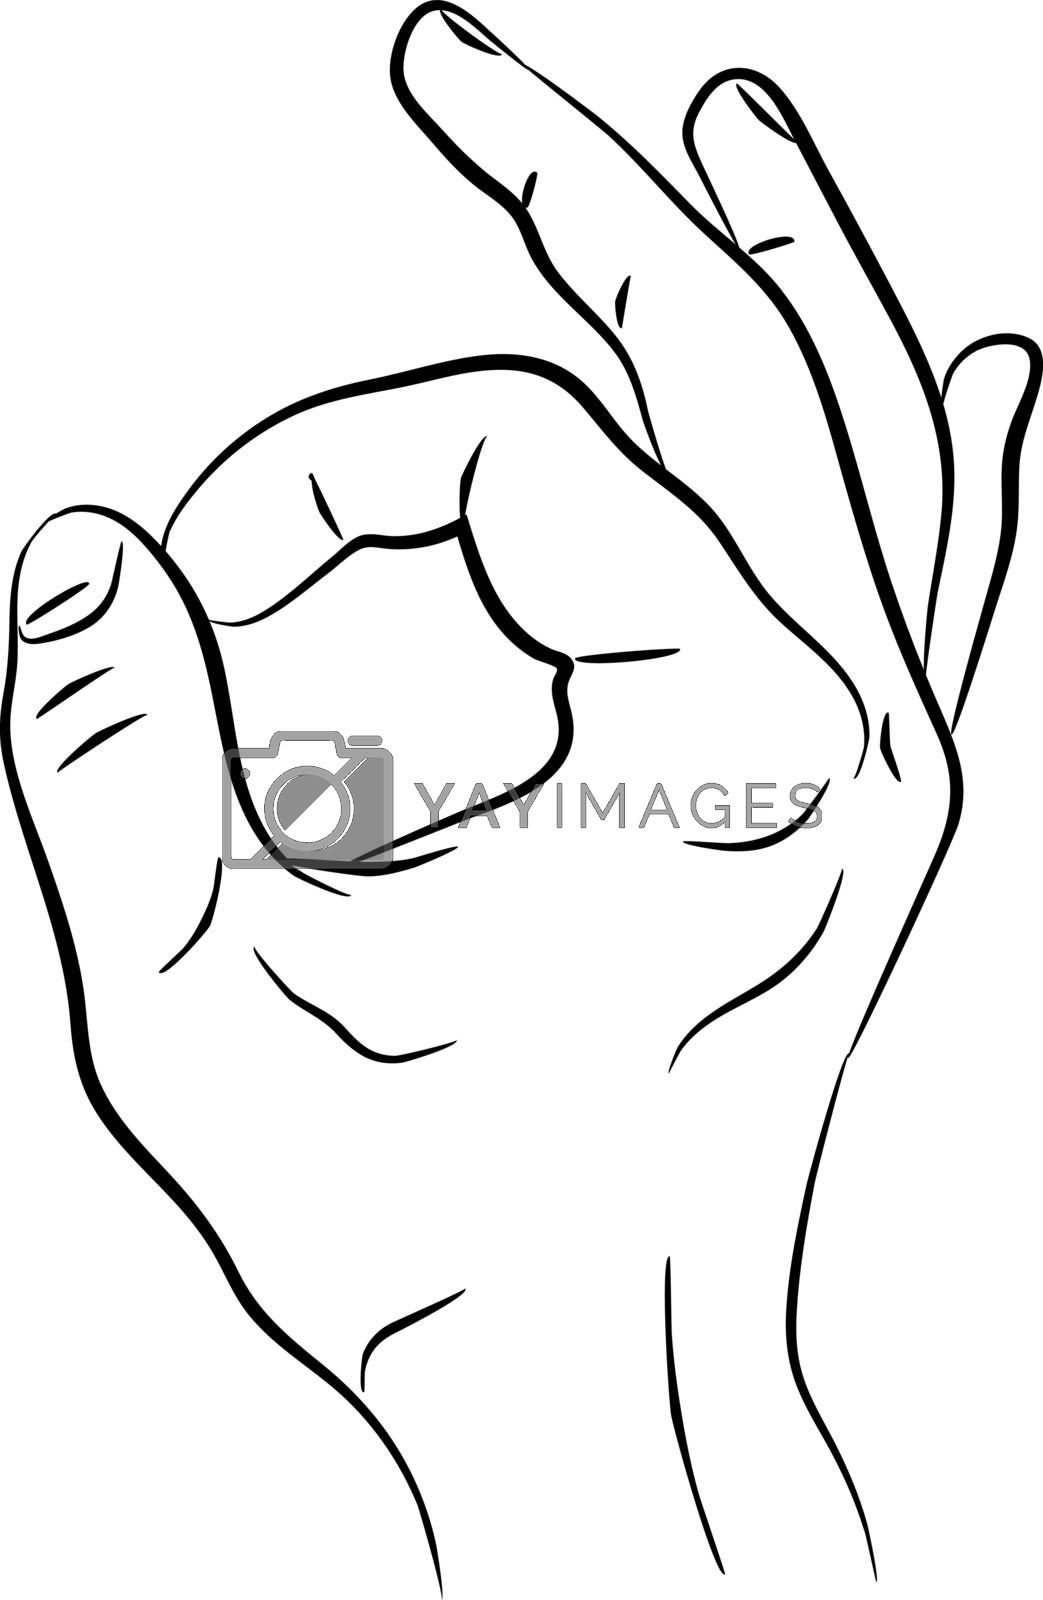 Hand showing symbol okay. OK. Vectorillustration isolated on white background. Sign for web, poster, info graphic EPS